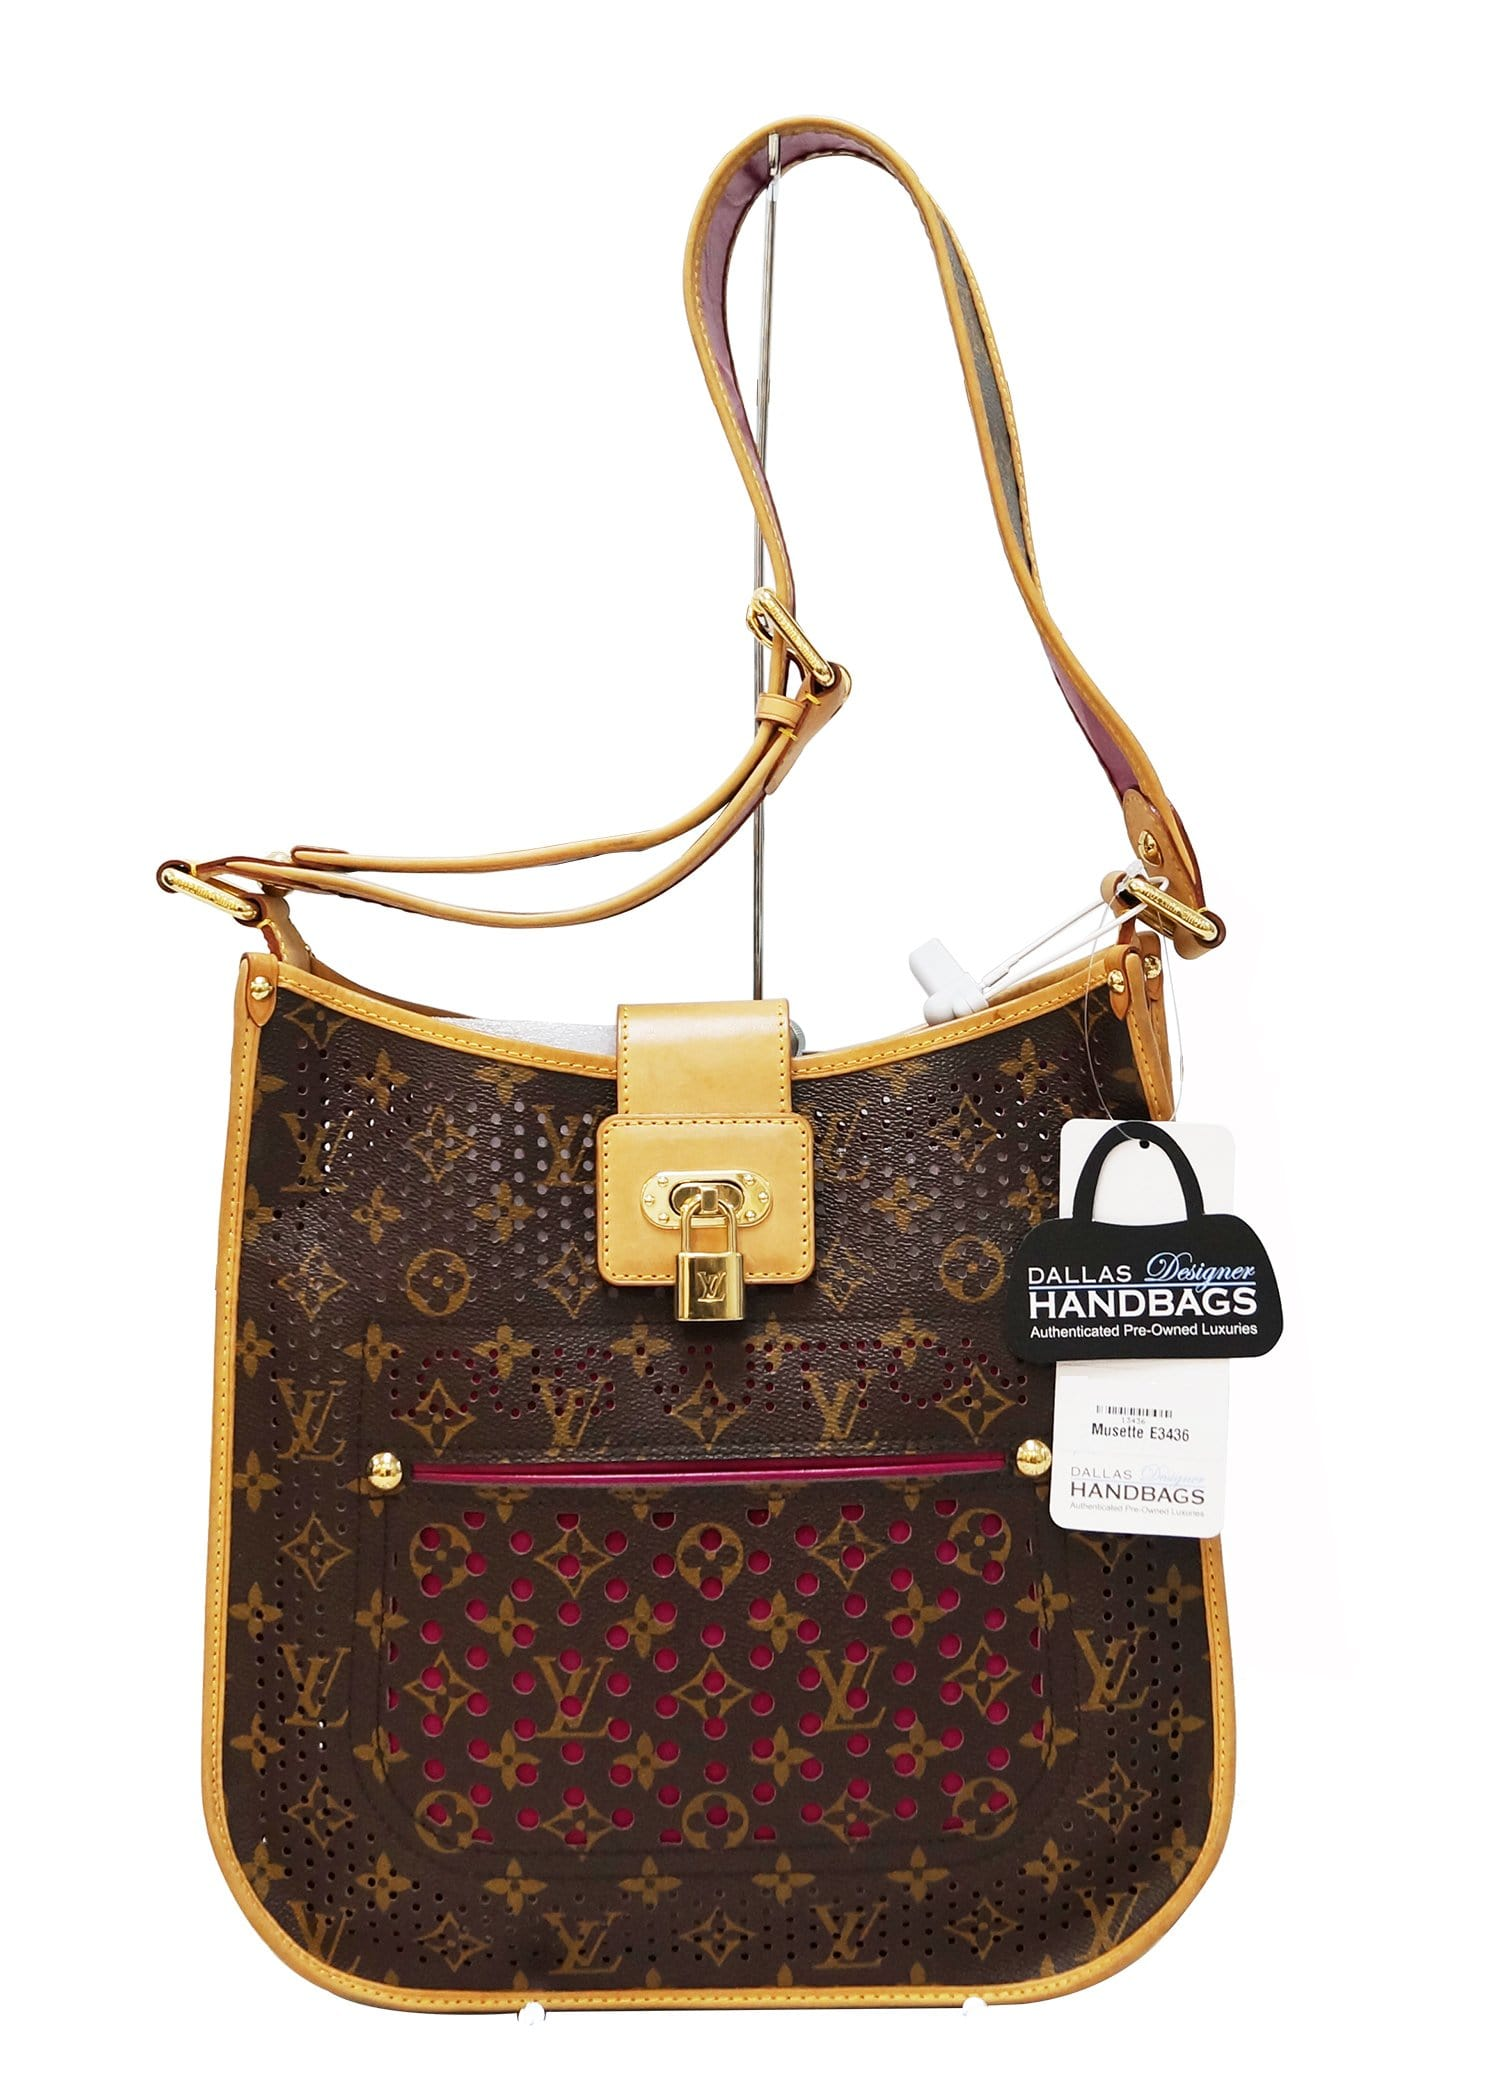 4cc5ad275f82 Authentic LOUIS VUITTON Monogram Perforated Musette Fuchsia Bag Limited  Edition